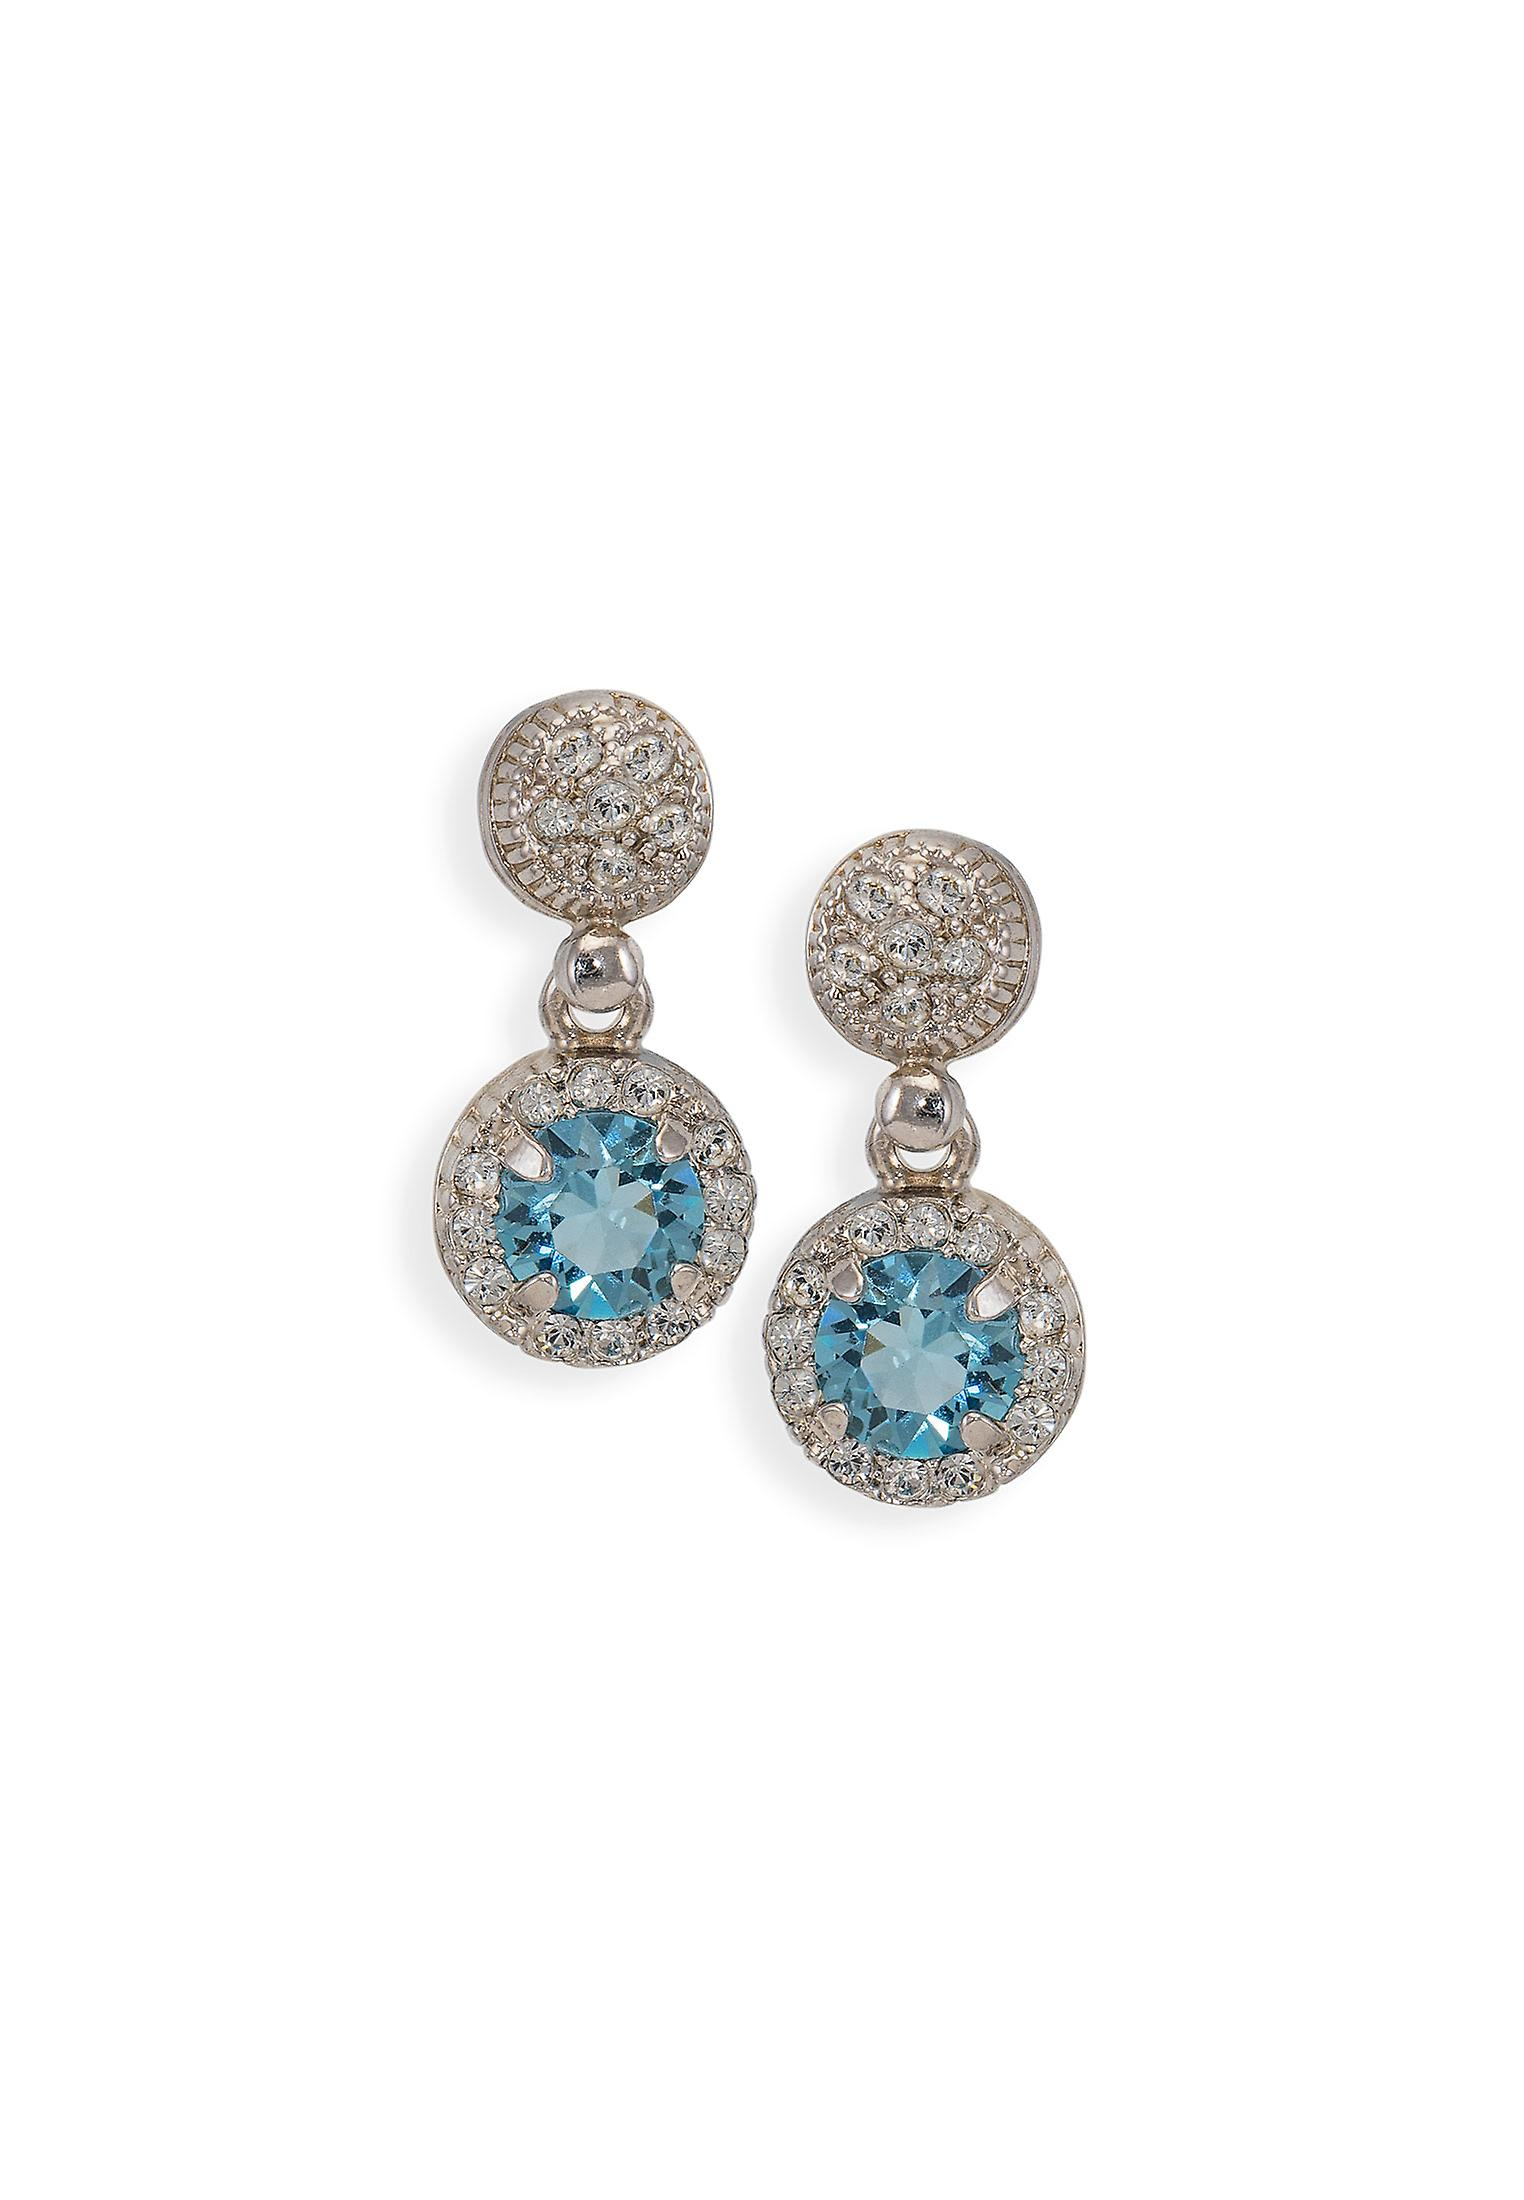 Blue earrings with crystals from Swarovski 4796